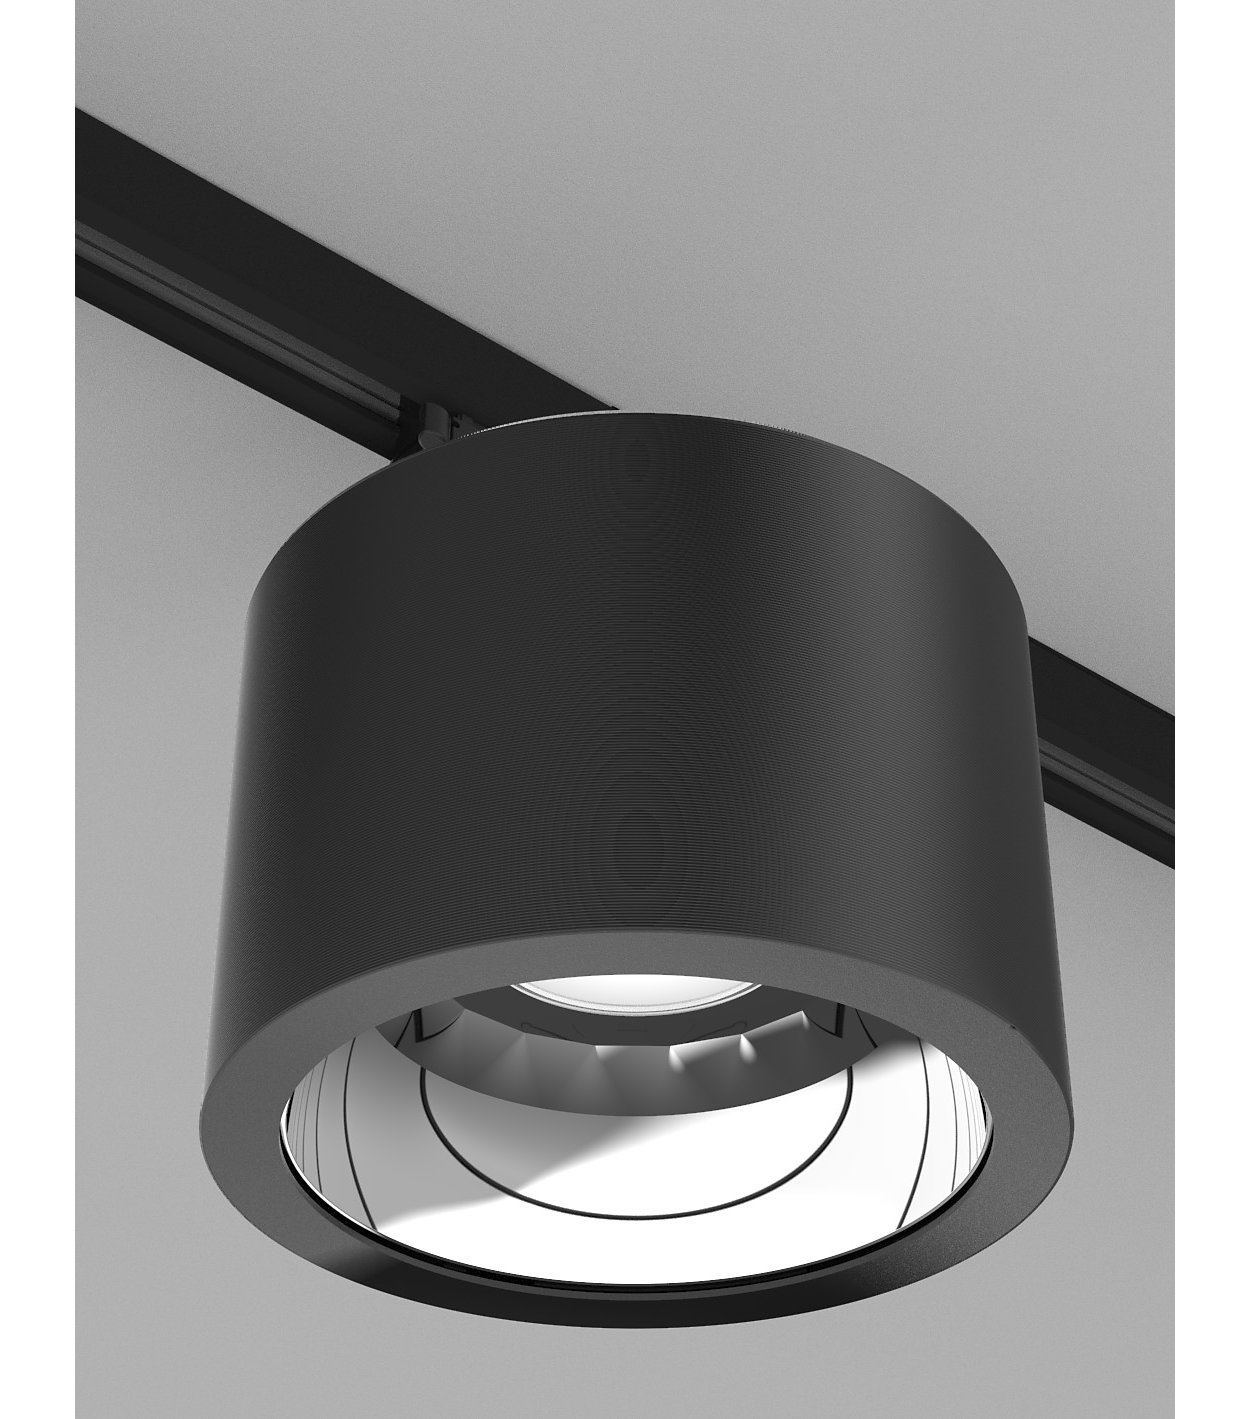 GreenSpace 2 downlight – high-efficiency sustainable LED solution